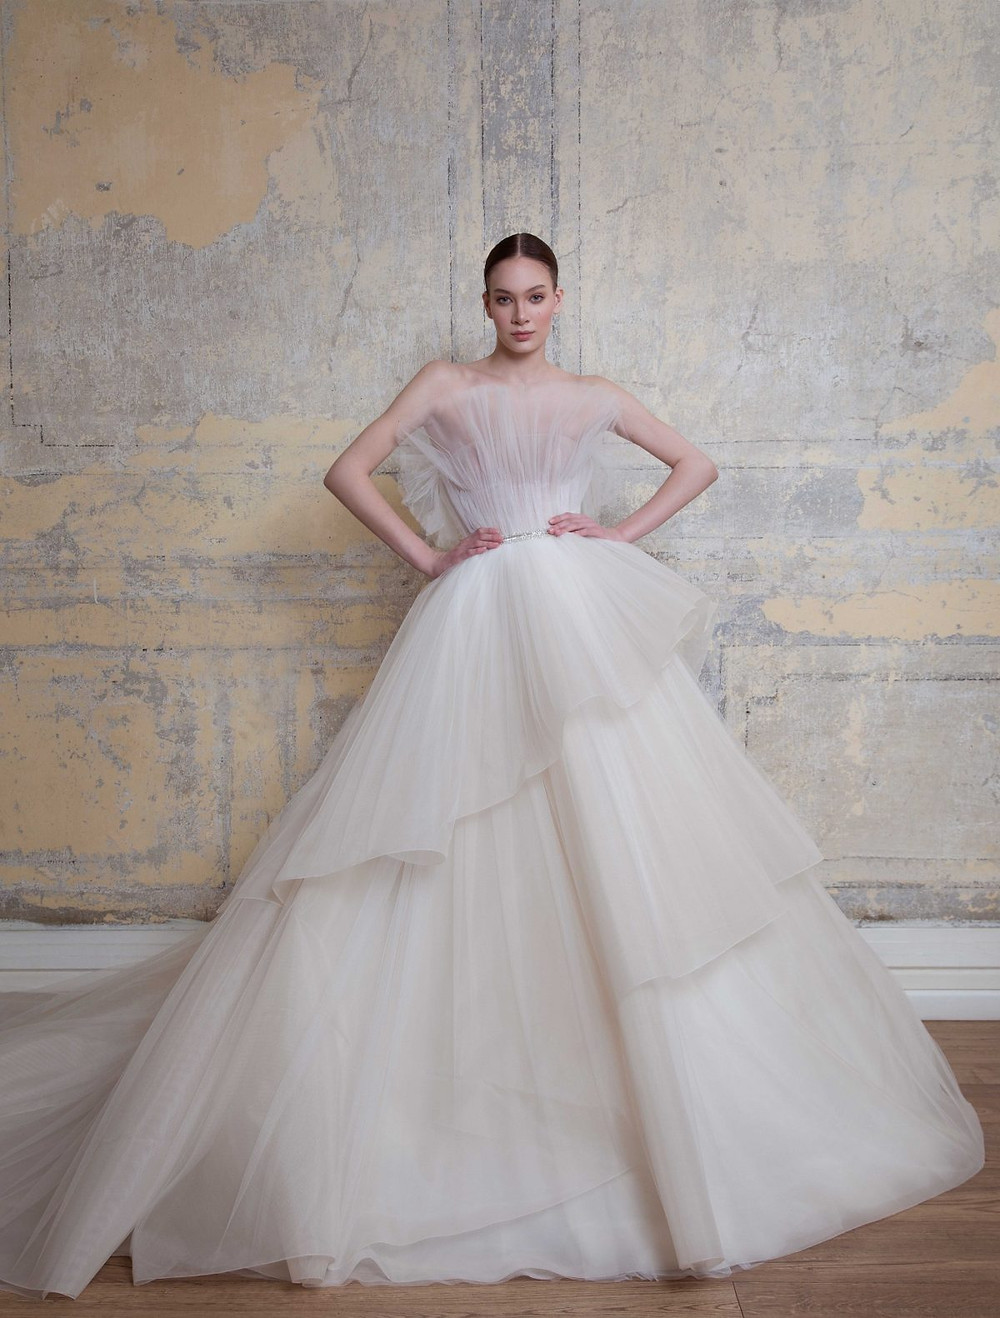 A Georges Hobeika strapless ball gown wedding dress with a layered tulle skirt